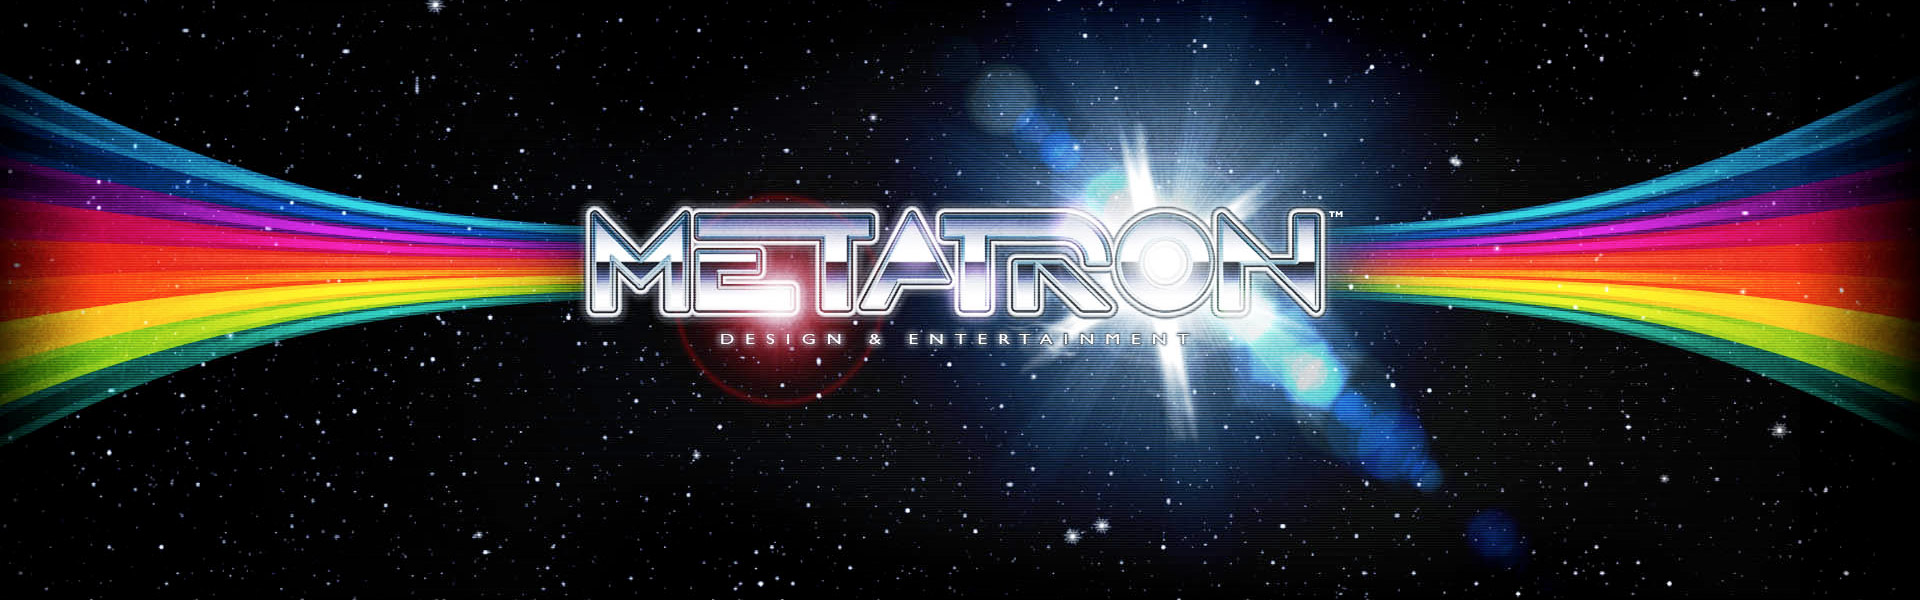 1920x1200-metatron-wallpaper